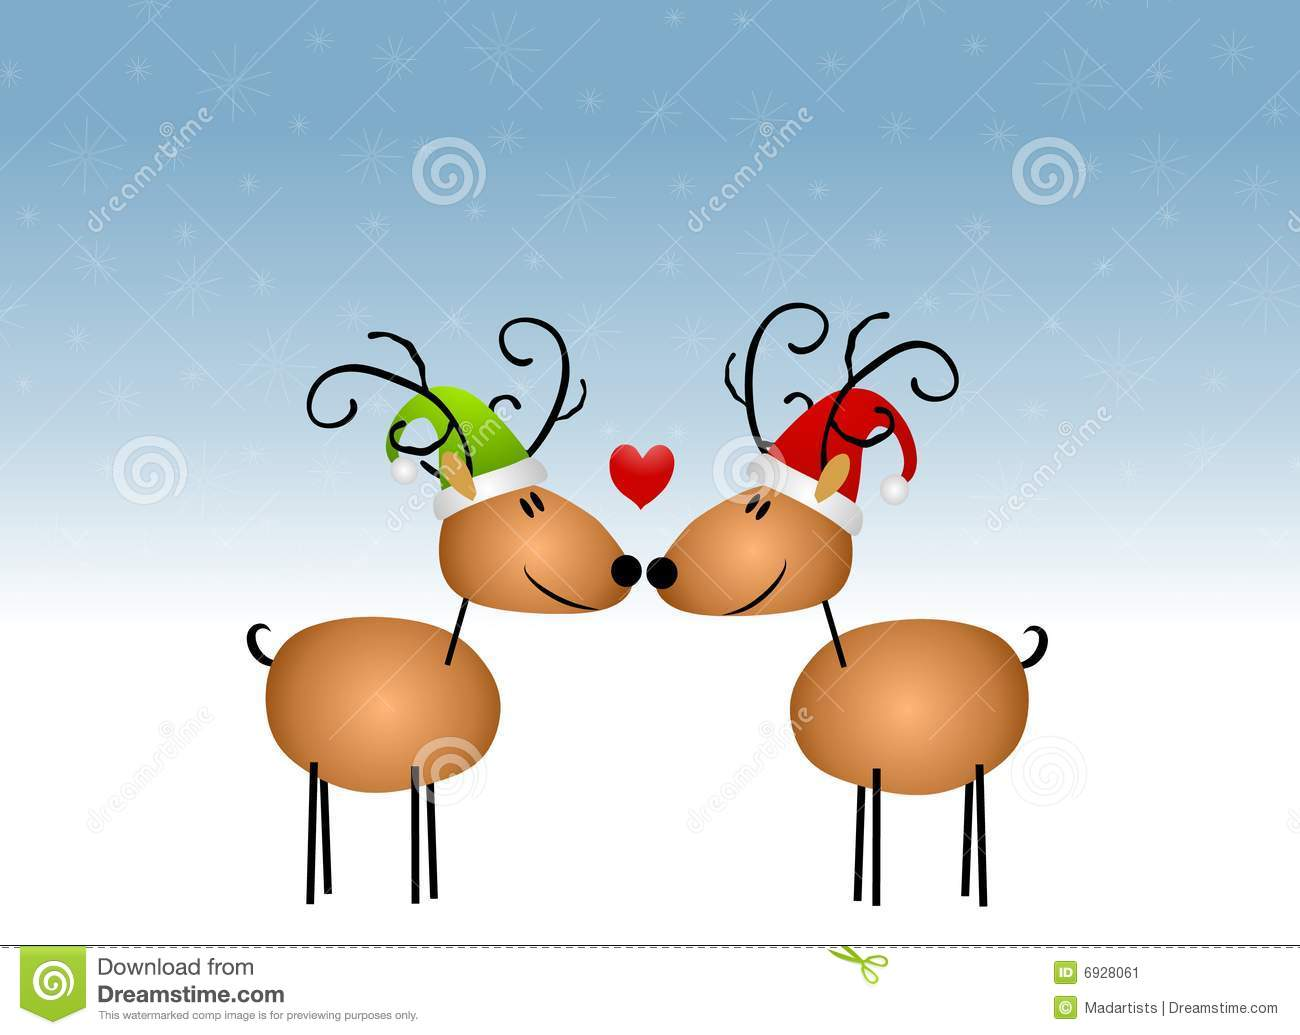 clip art illustration featuring a pair of cartoon reindeer kissing ...